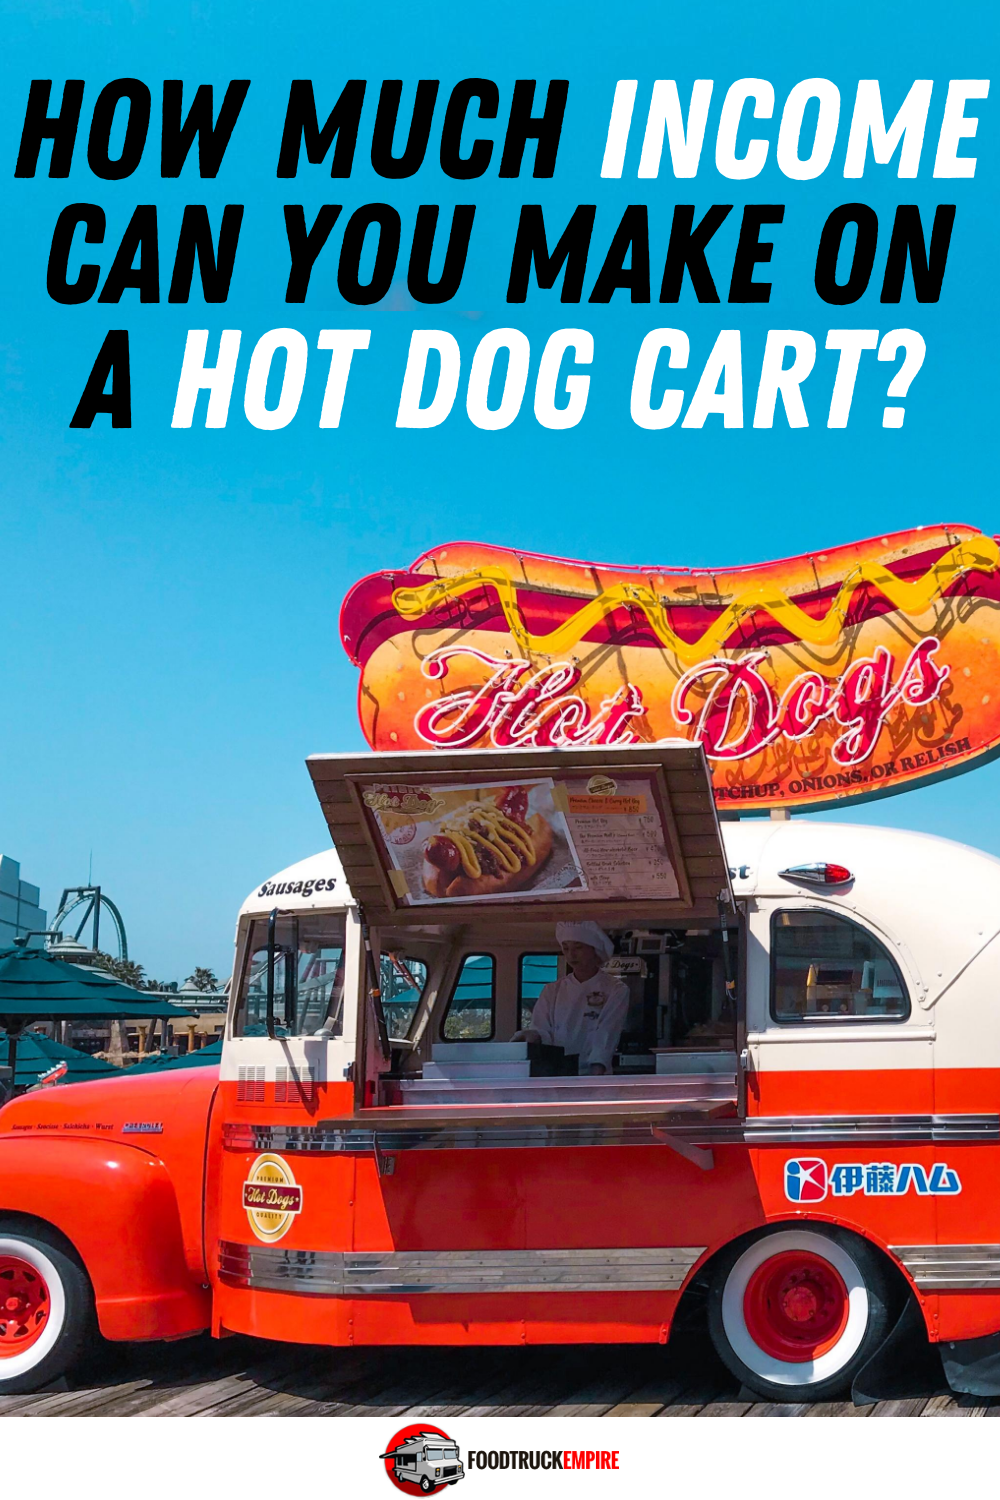 income on hot dog cart